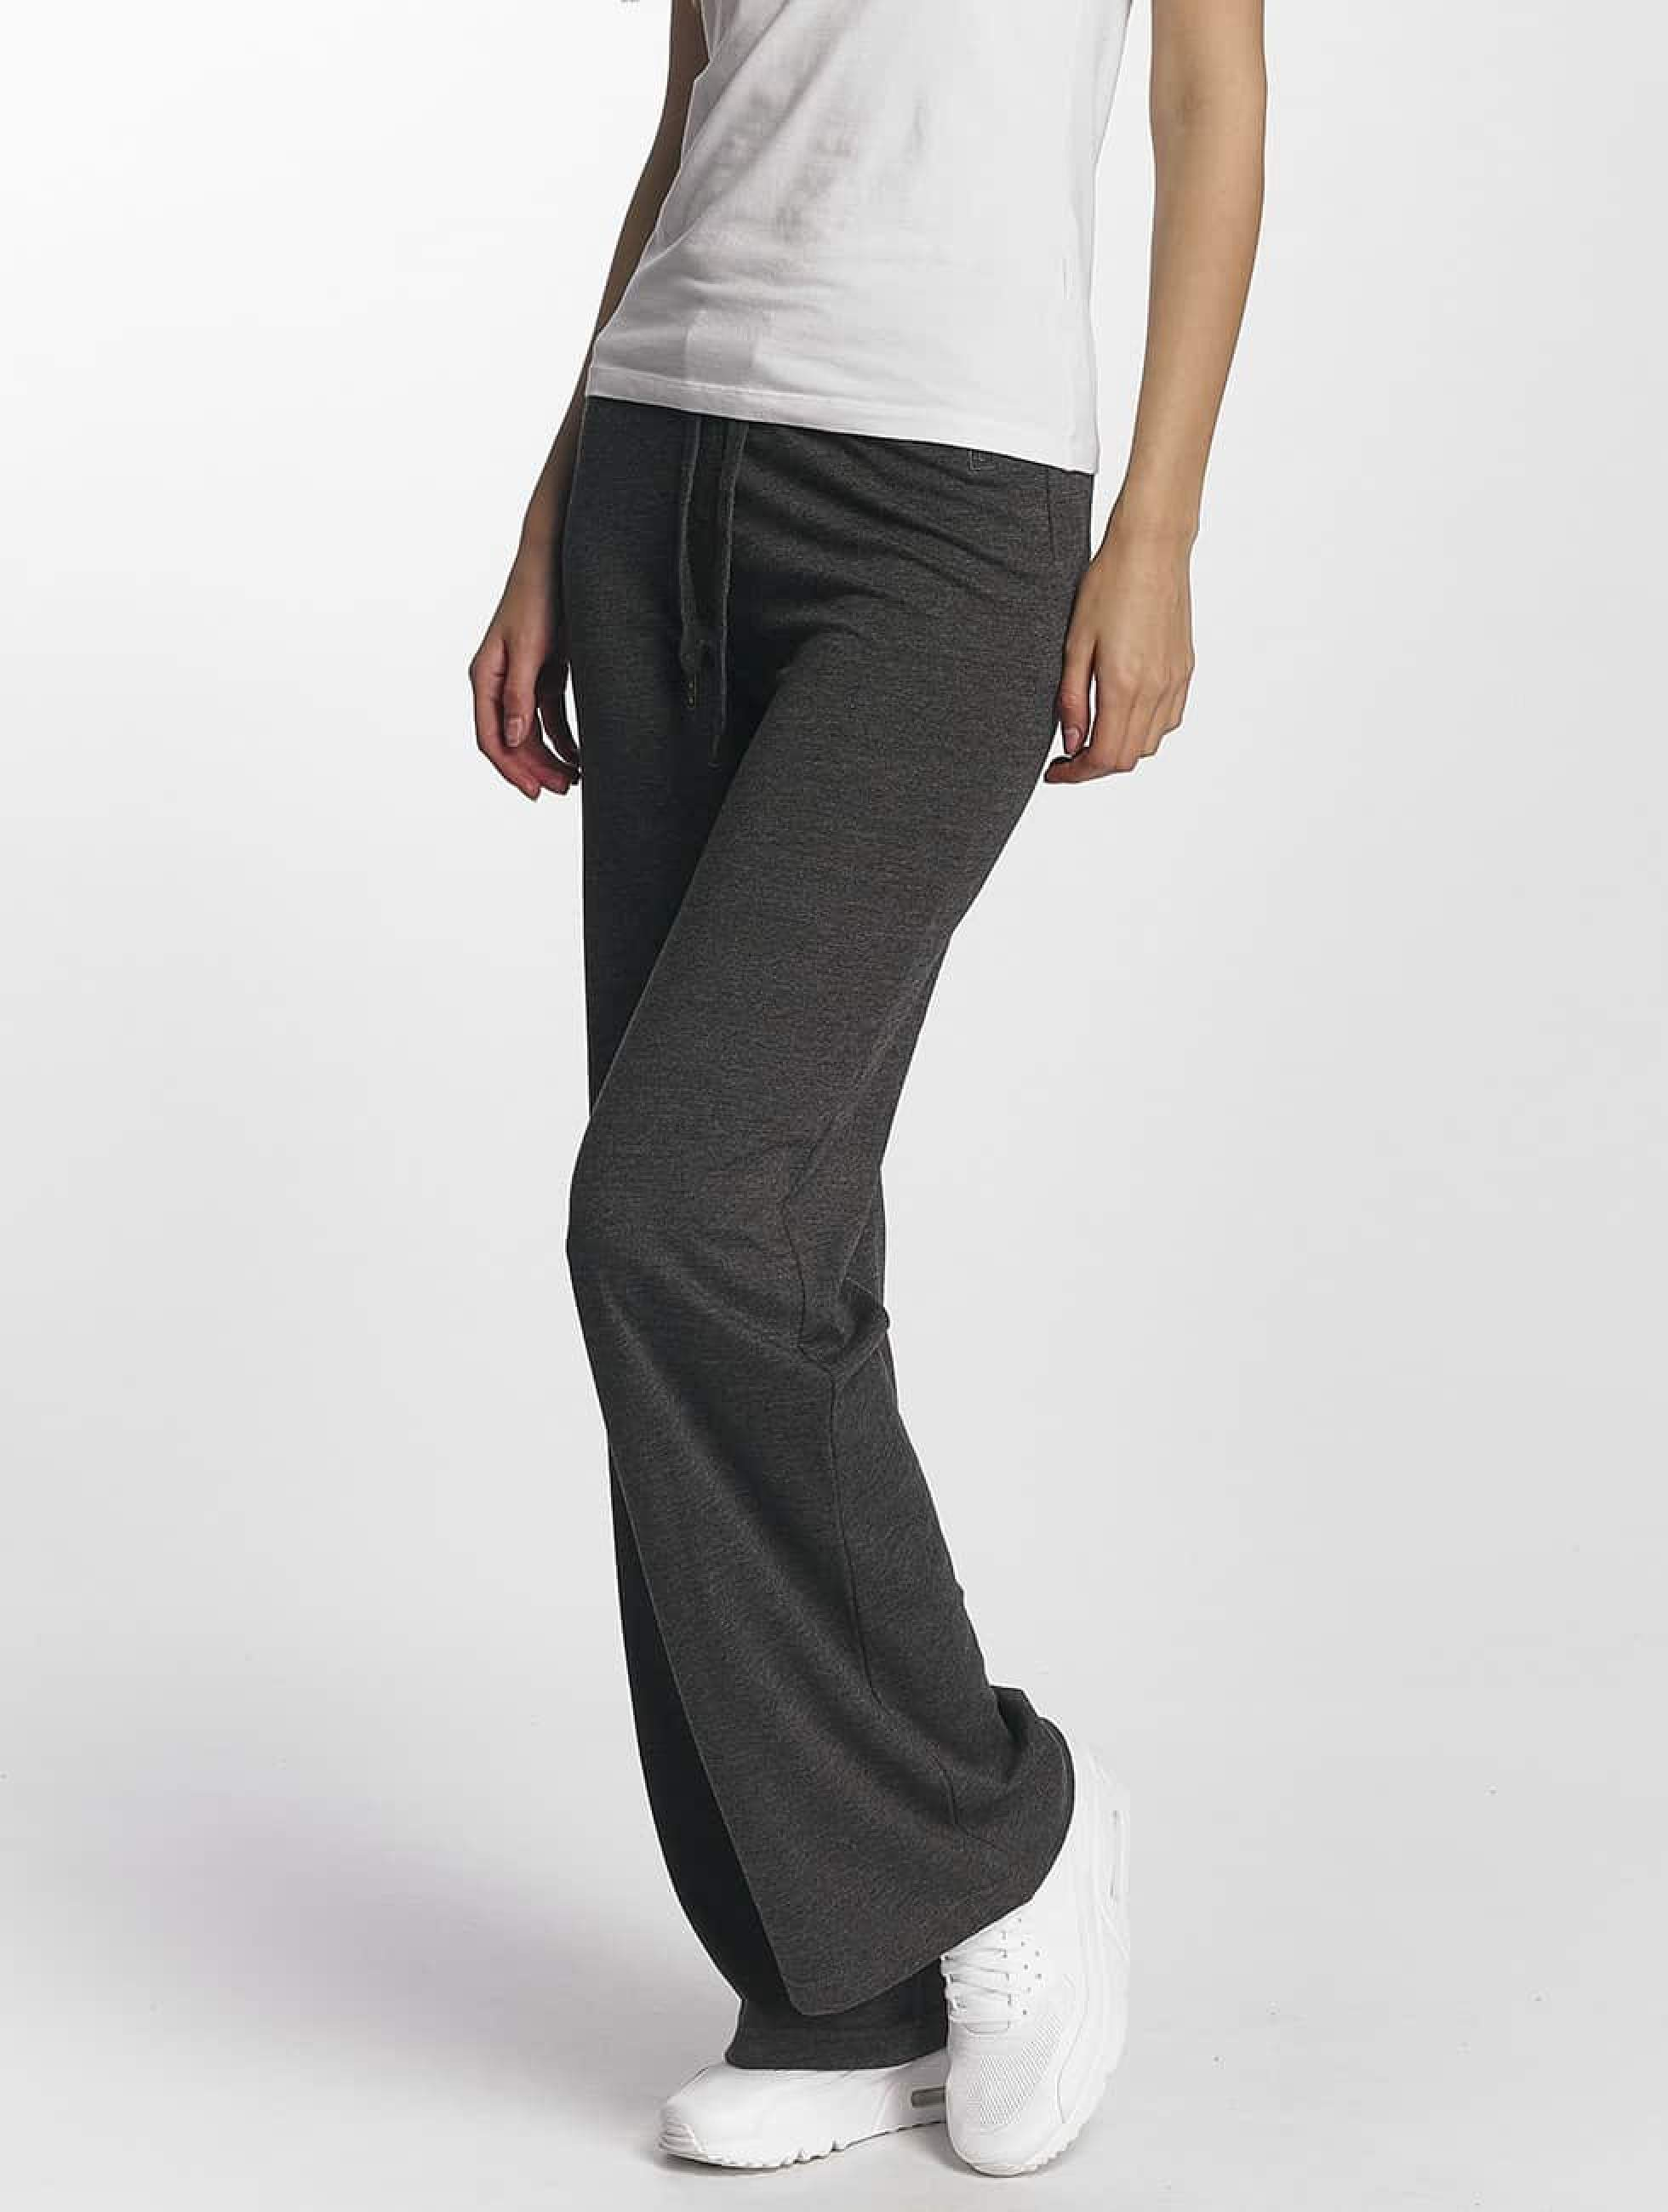 Cyprime / Sweat Pant Silicon in grey S